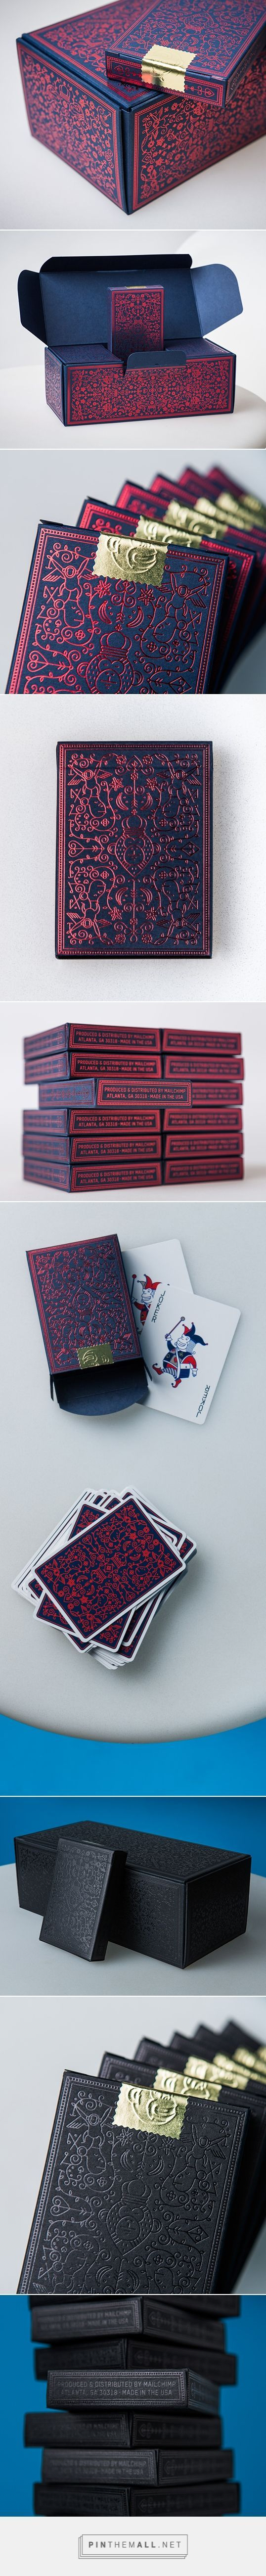 Packaging Inspiration | #1220